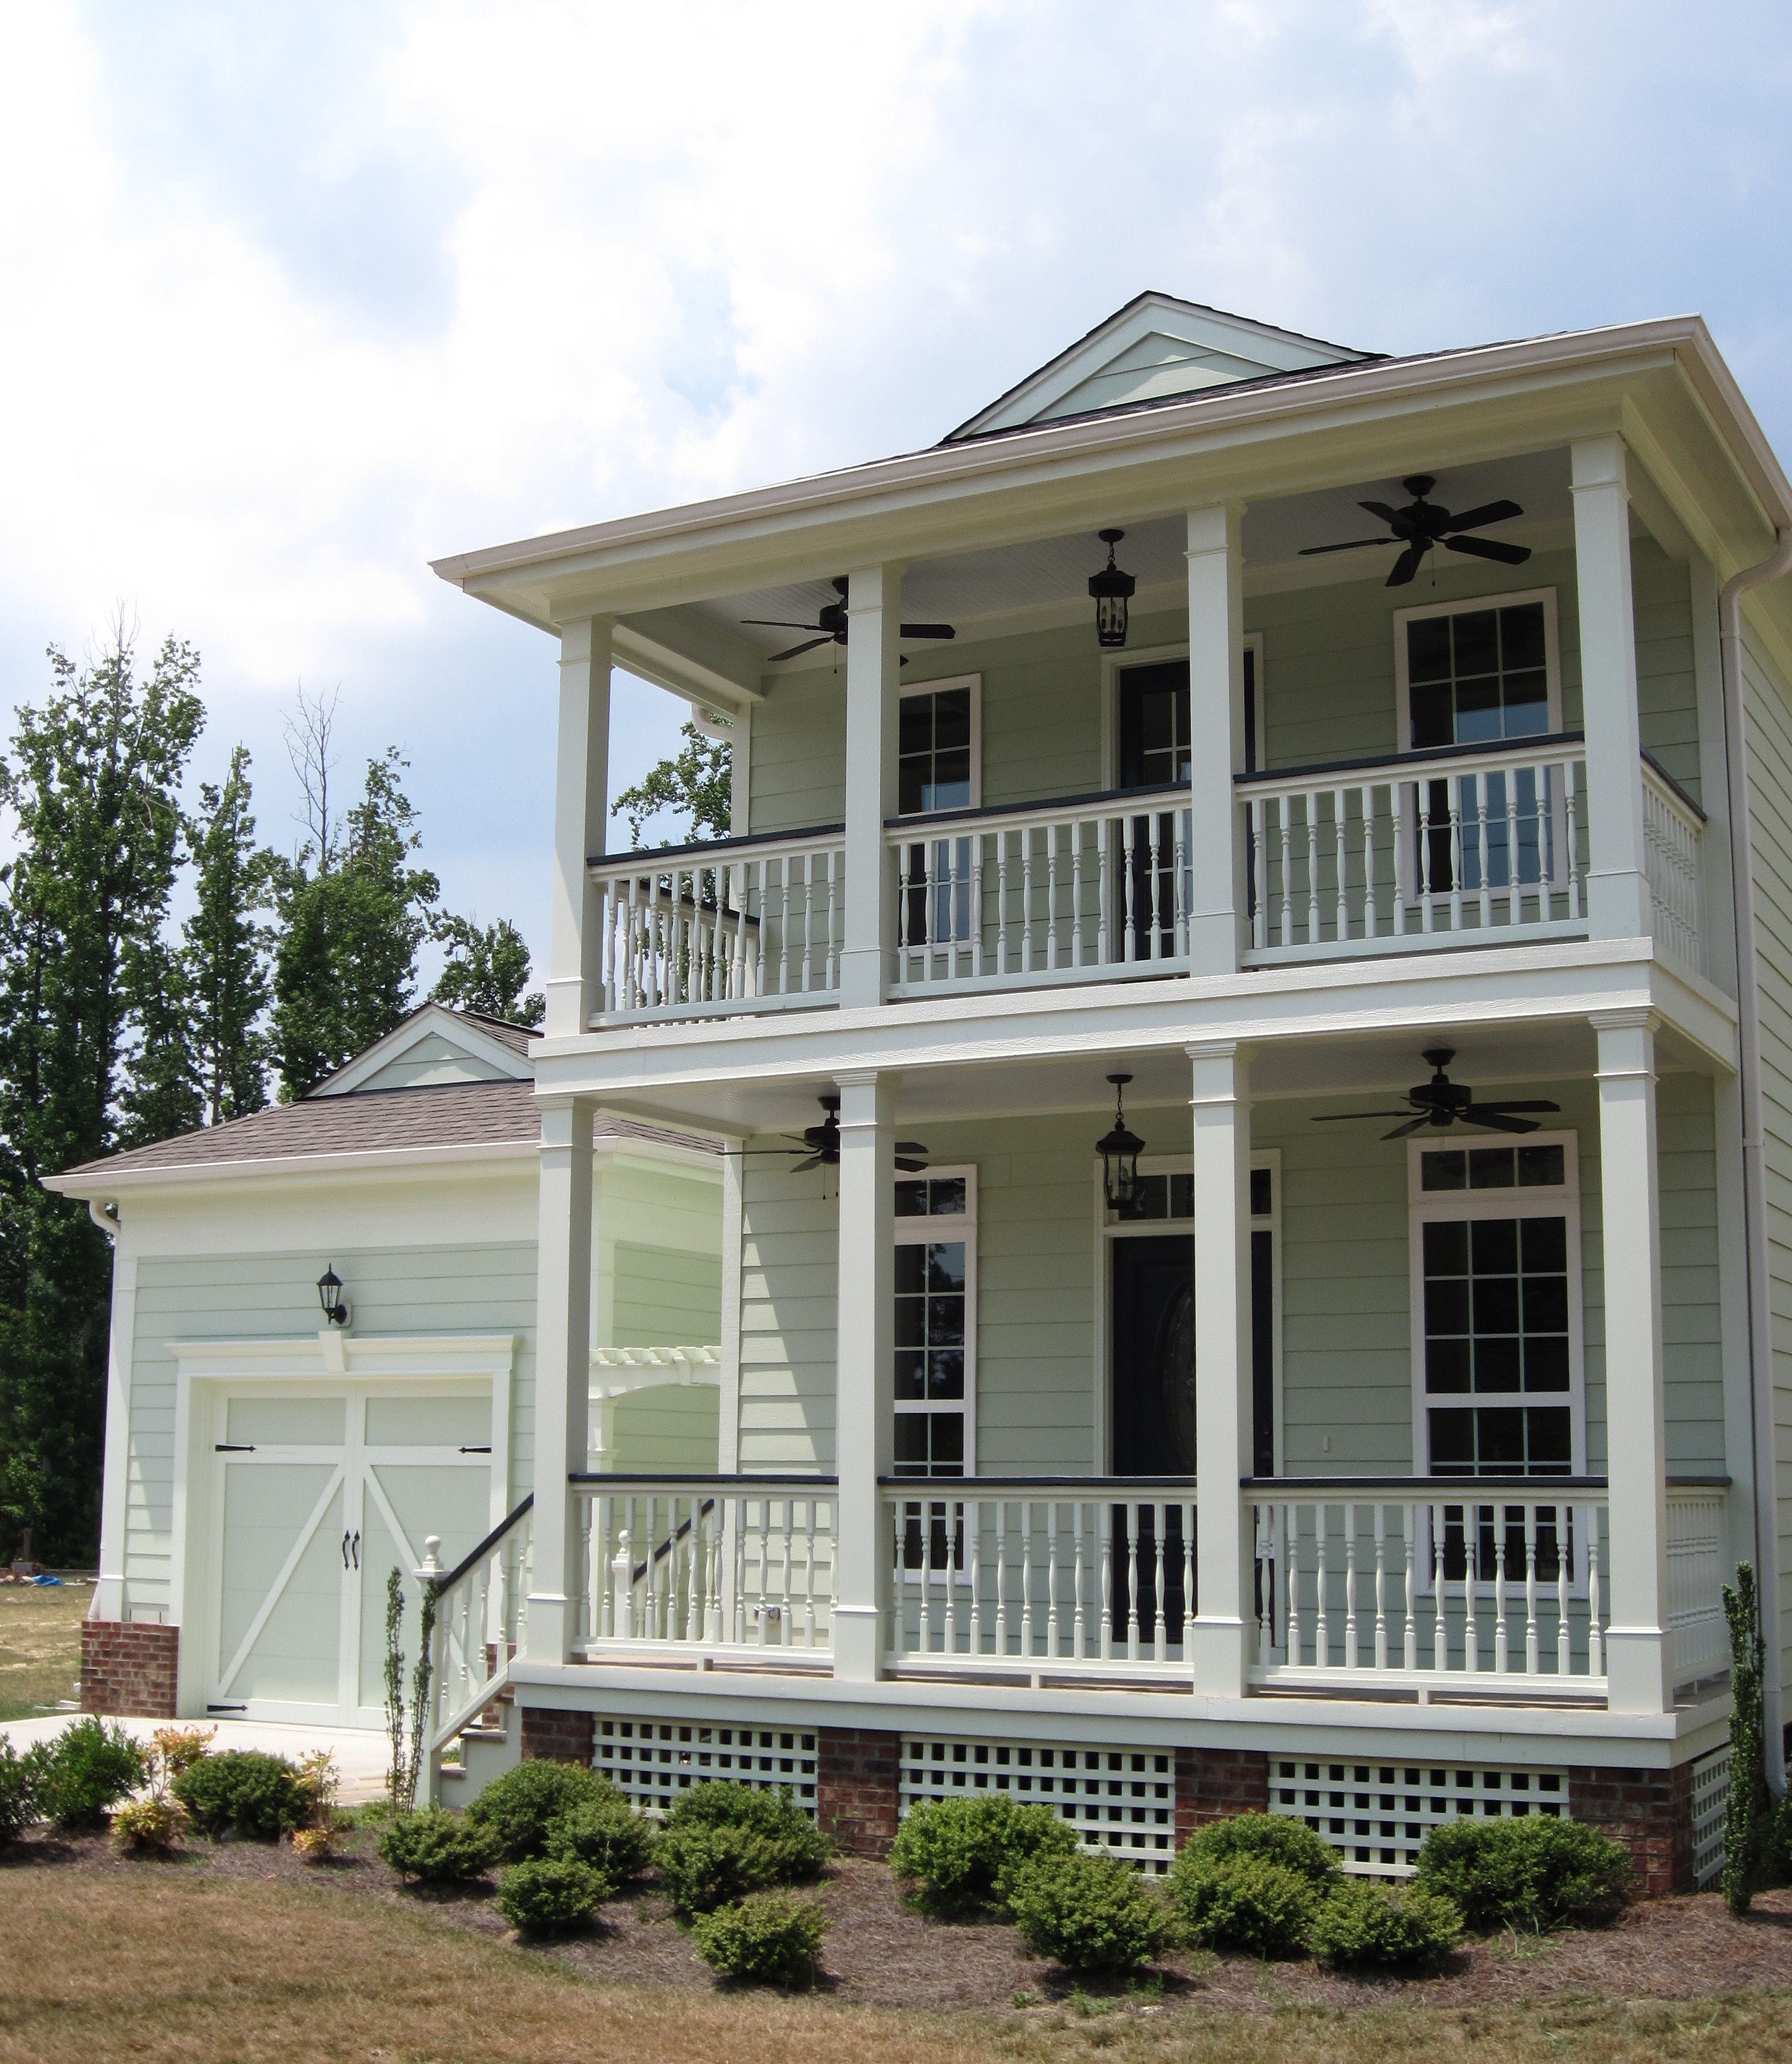 The Charleston Row House Designed And Built By Sorensen Design Build Visit Us Today Www Scbuilt Com F Row House Design Charleston House Plans House Exterior